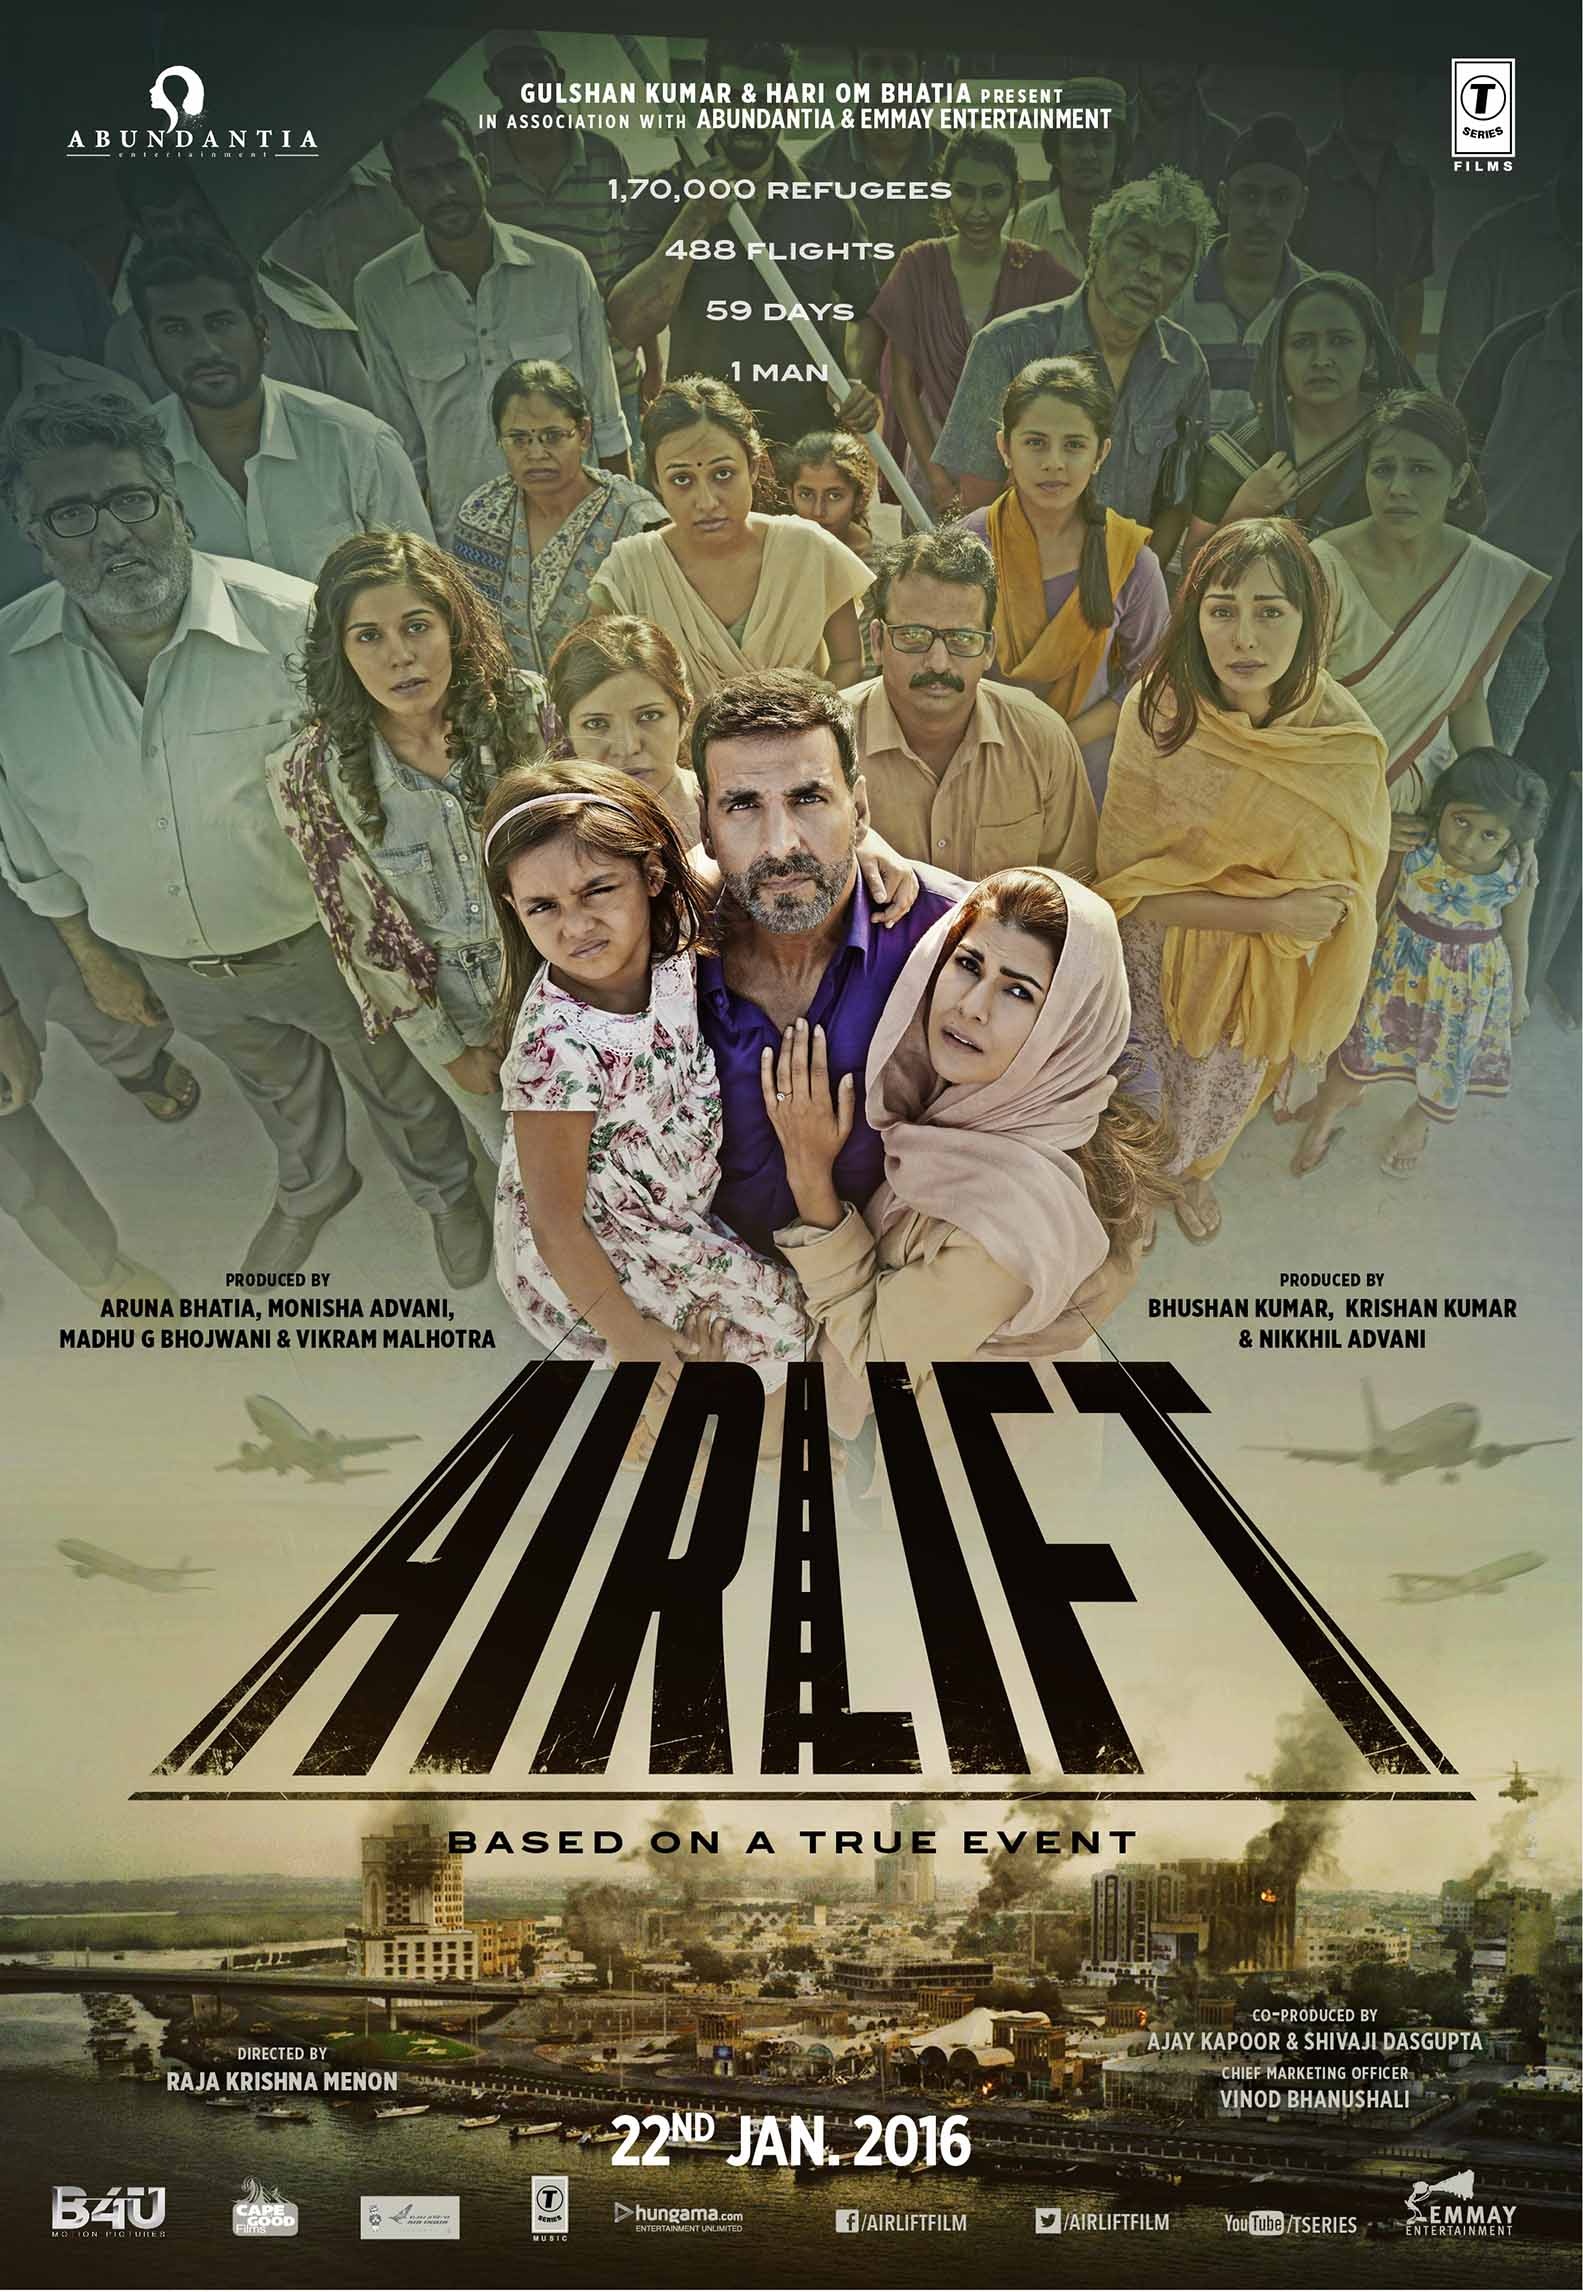 Airlift Movie Poster Akshay Kumar - Full HD Wallpaper